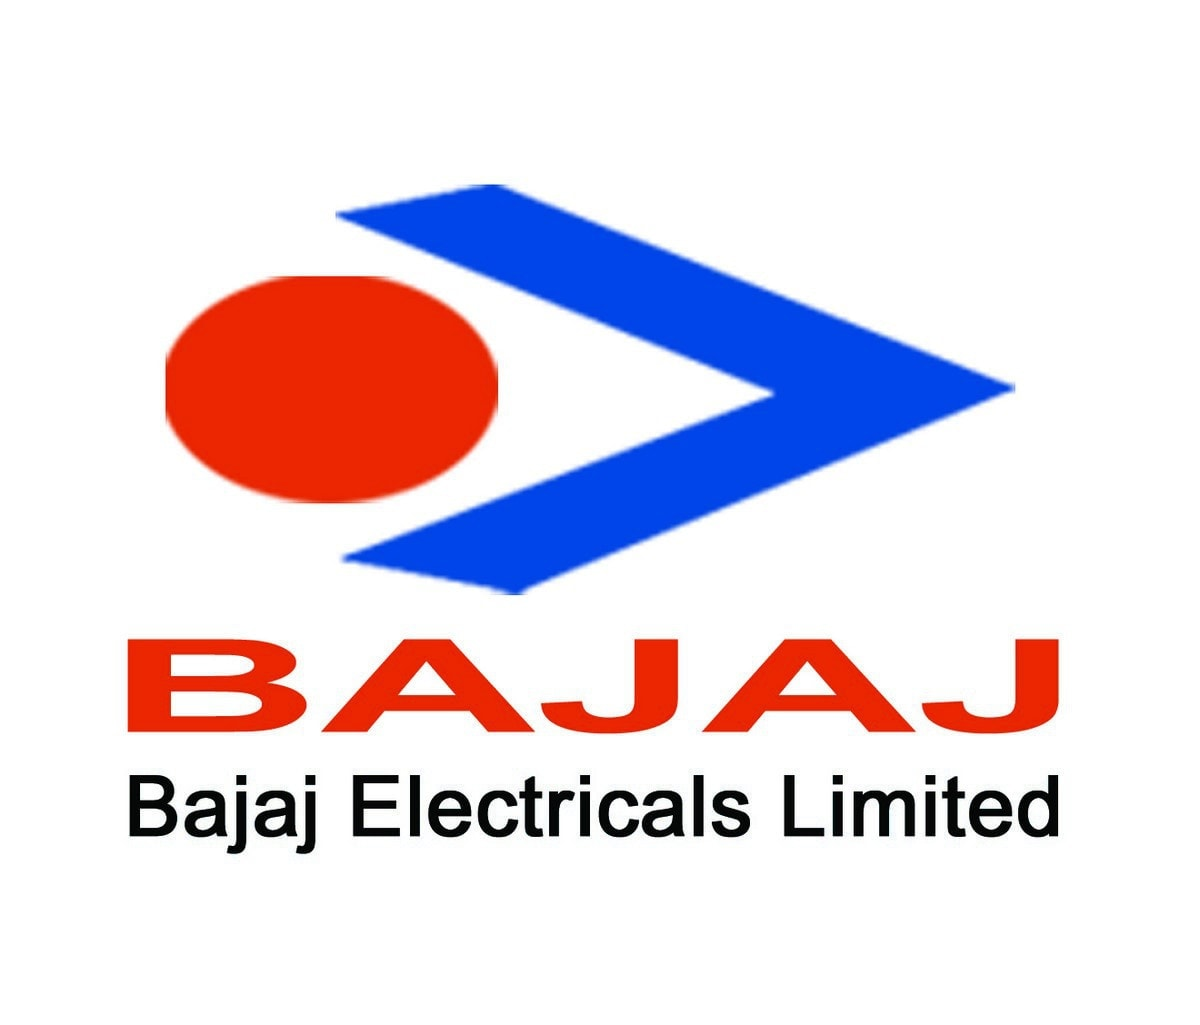 Marketing Strategy of Bajaj Electricals - 4